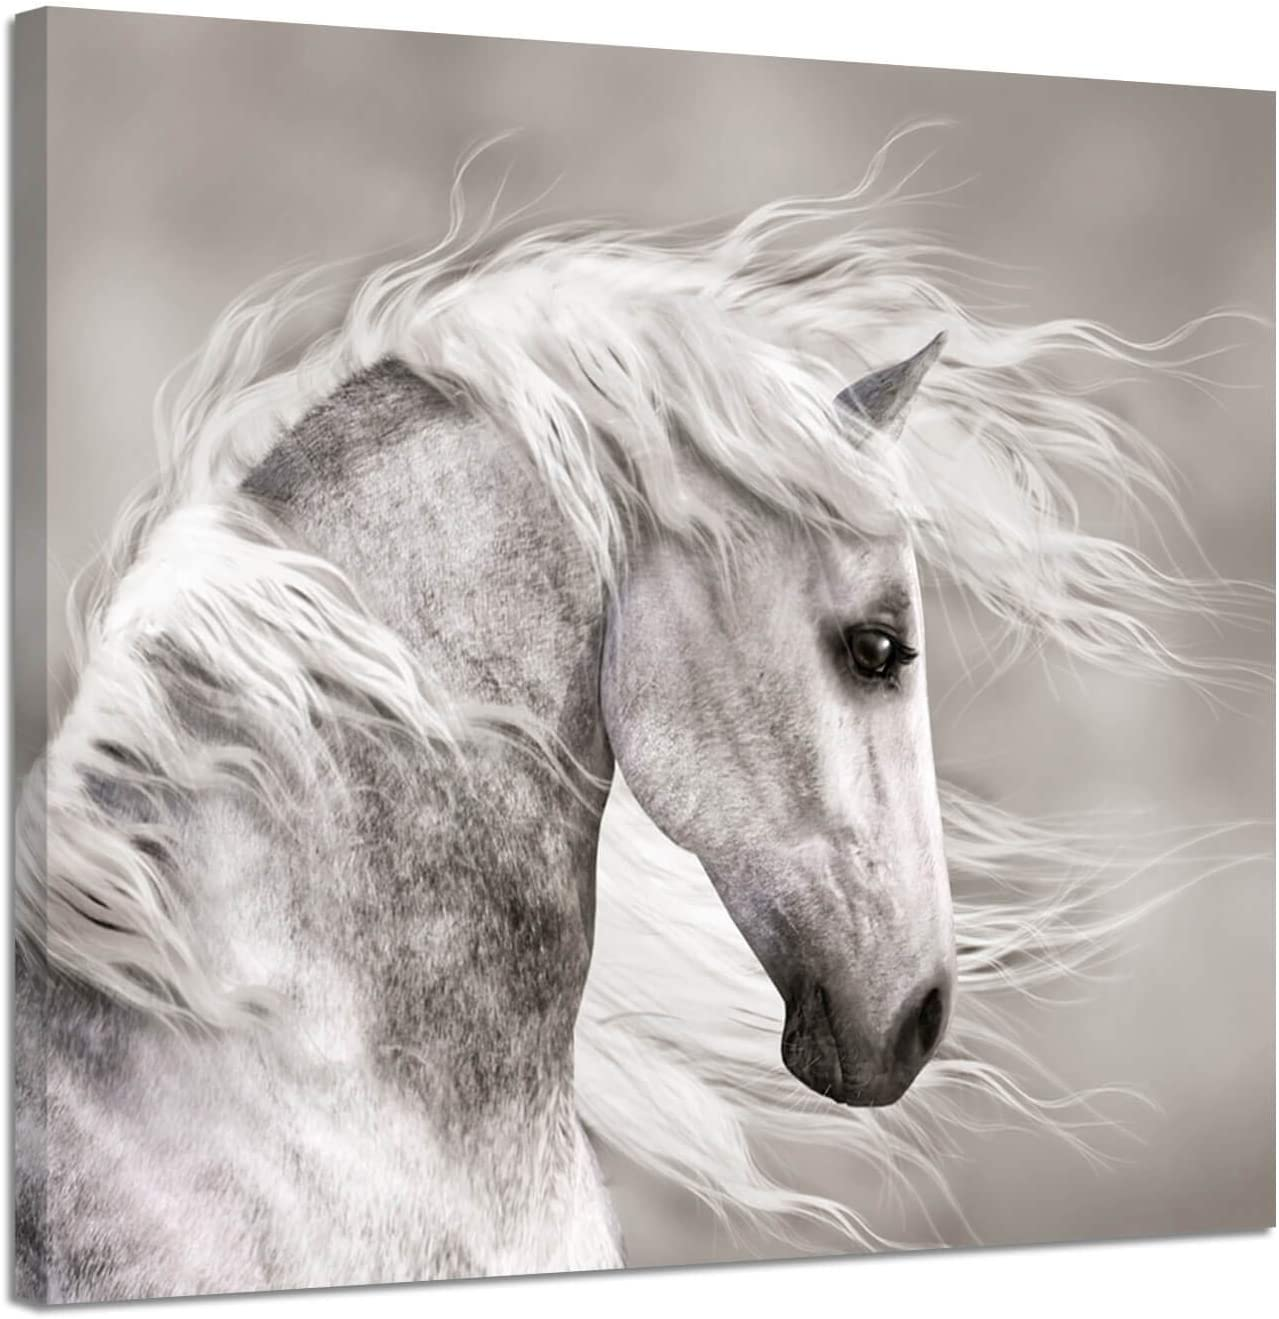 Animals Artwork Wildlife Picture Painting: White Horse Head Graphic Art Print for Wall Decor